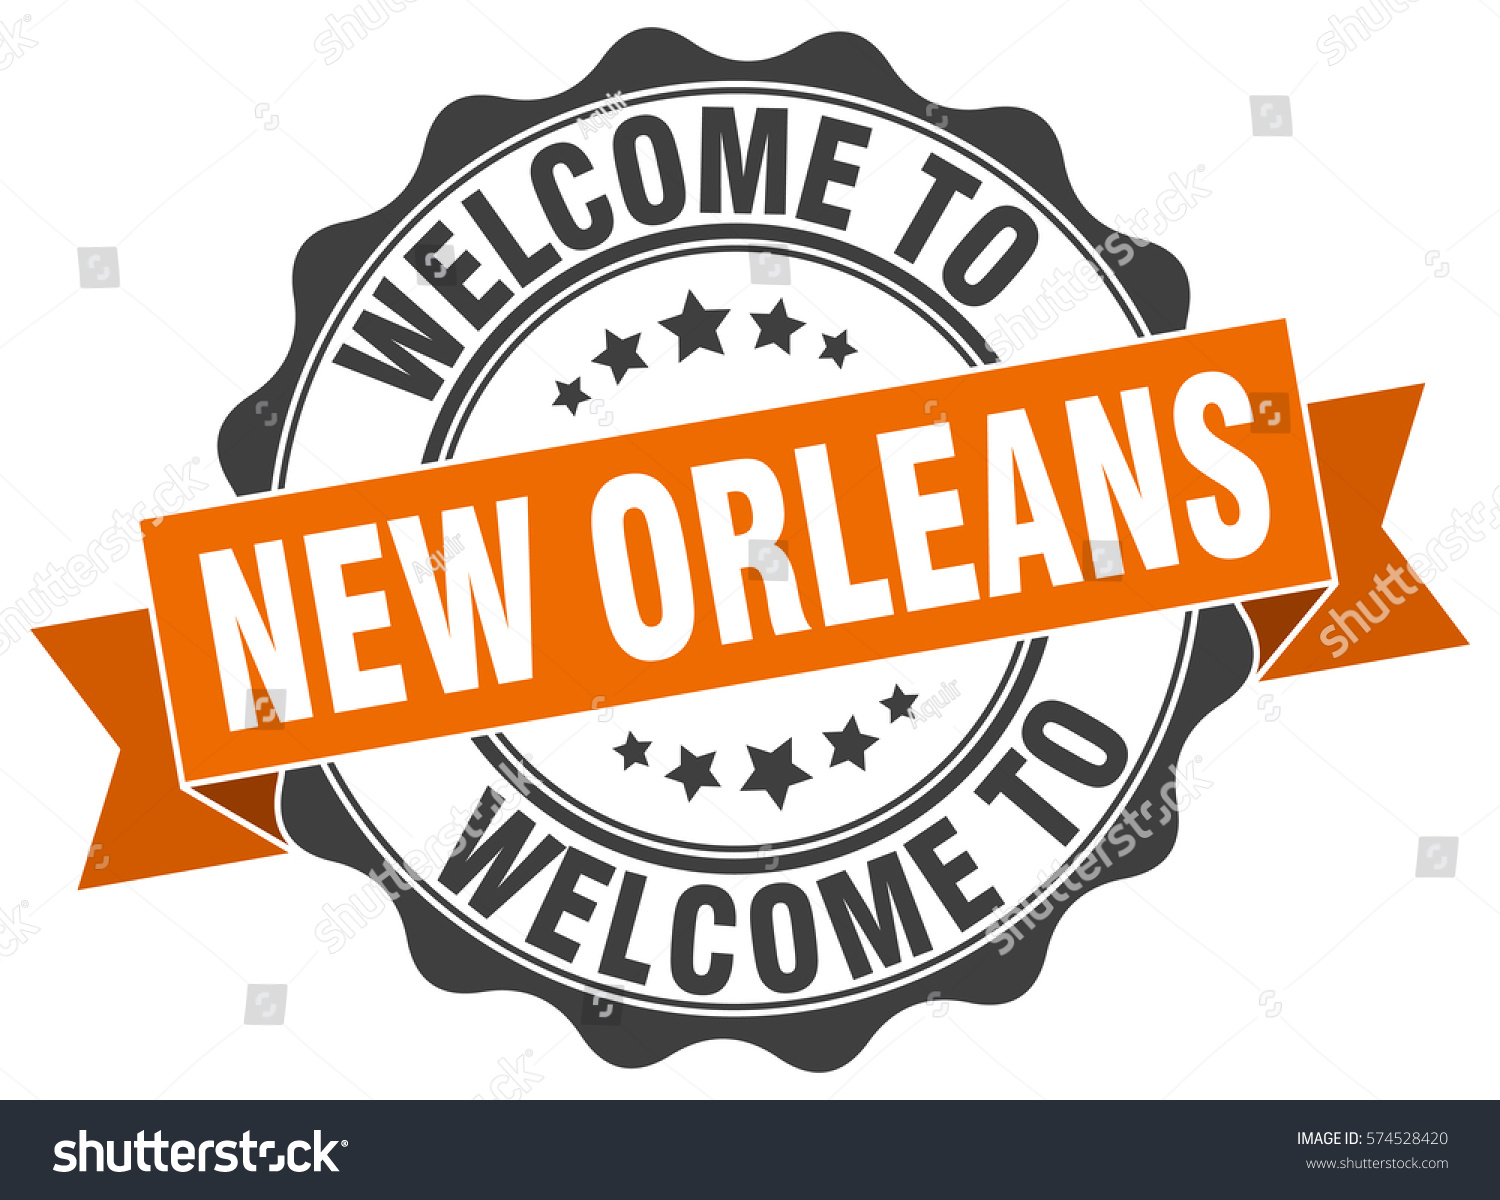 New orleans welcome new orleans stamp stock vector 574528420 new orleans welcome to new orleans stamp buycottarizona Images